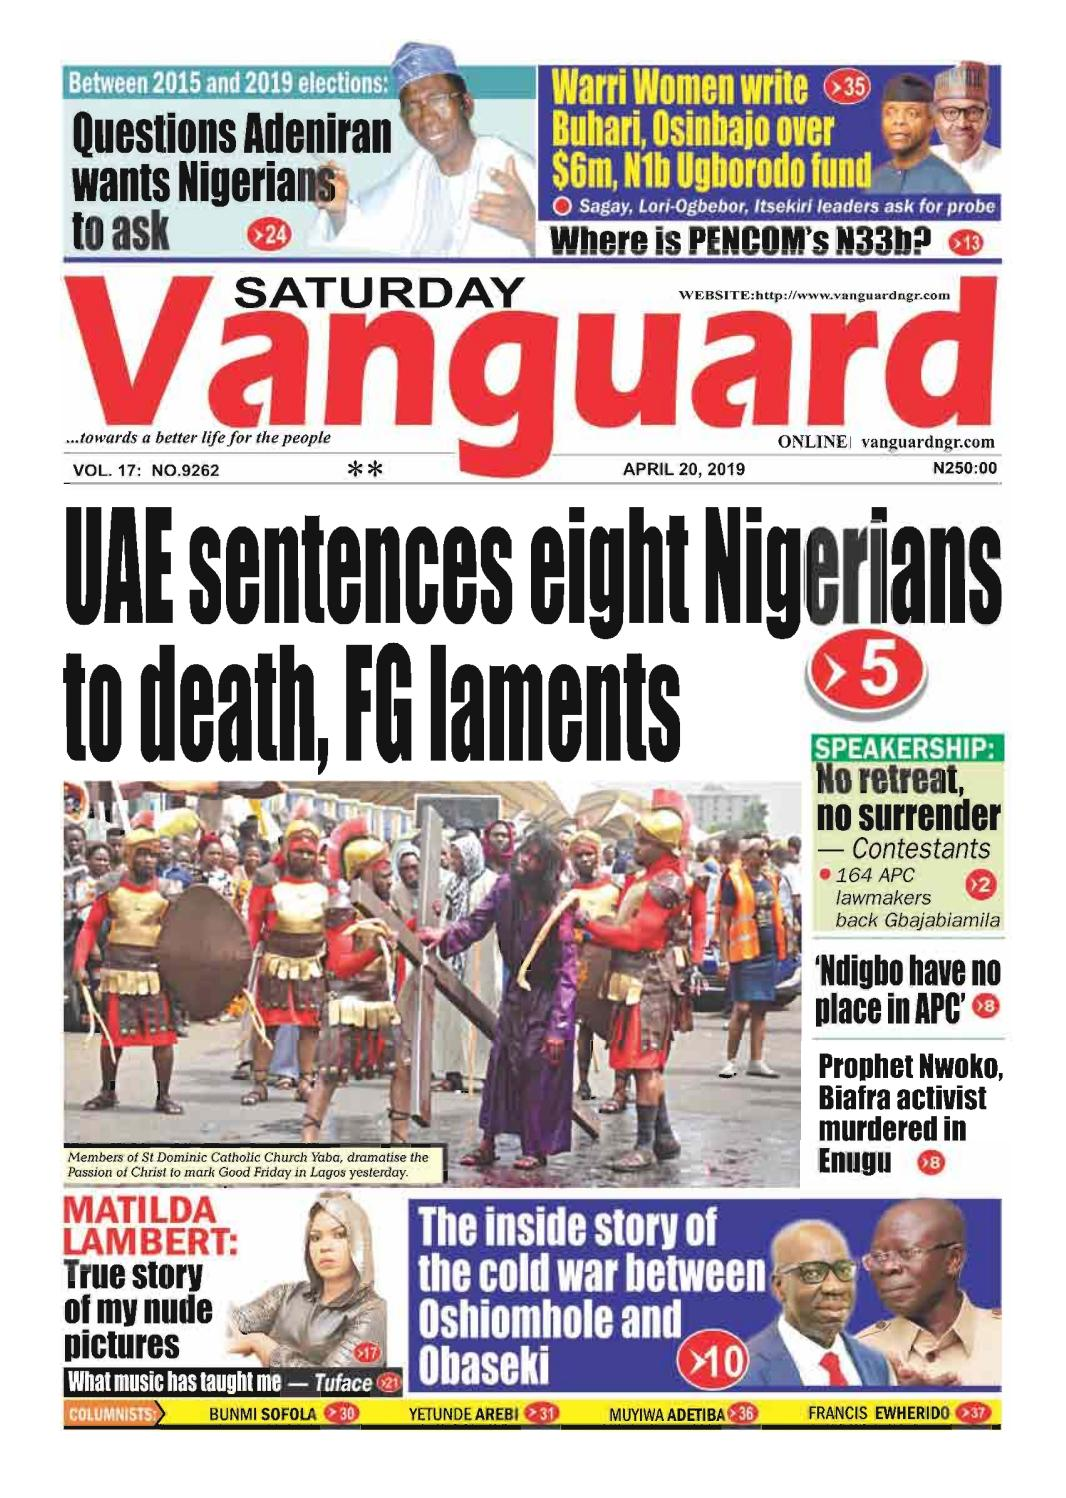 20042019 - UAE sentences eight Nigerians to death FG laments by